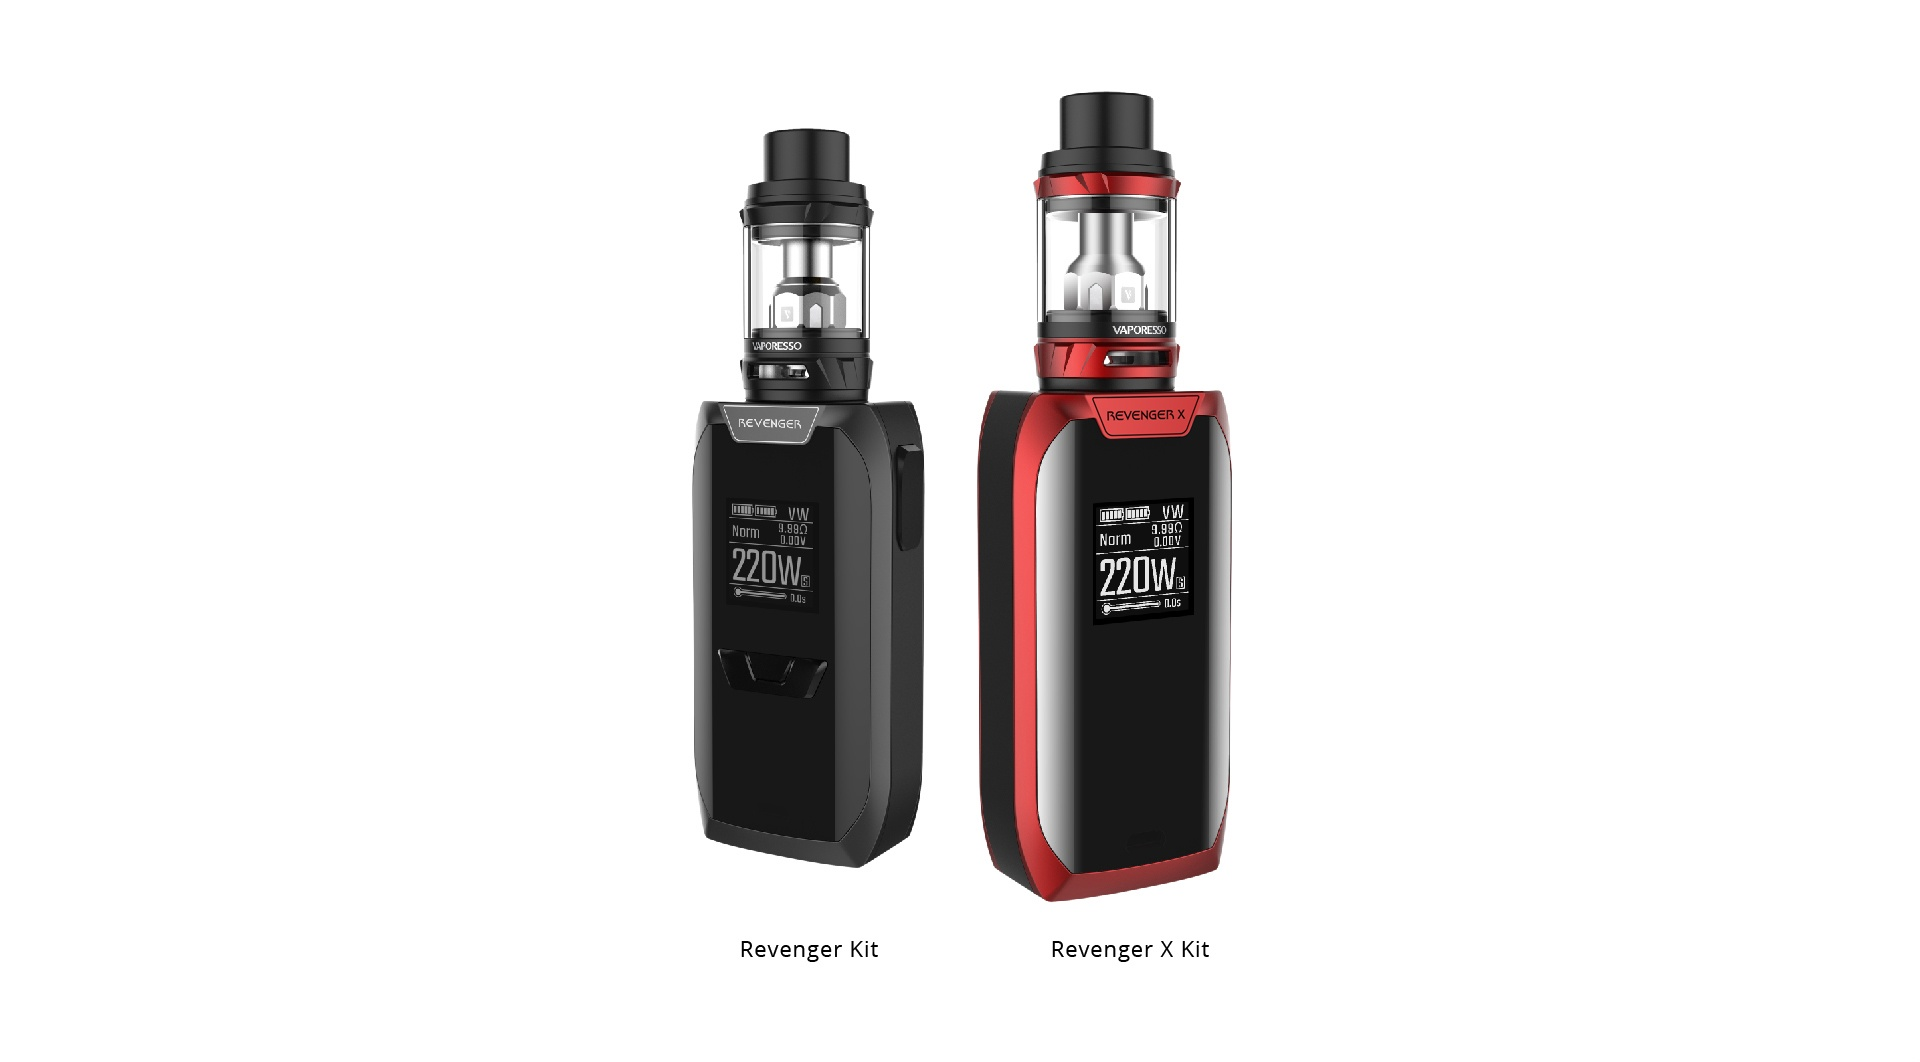 revenger_x_kit_comparision.jpg